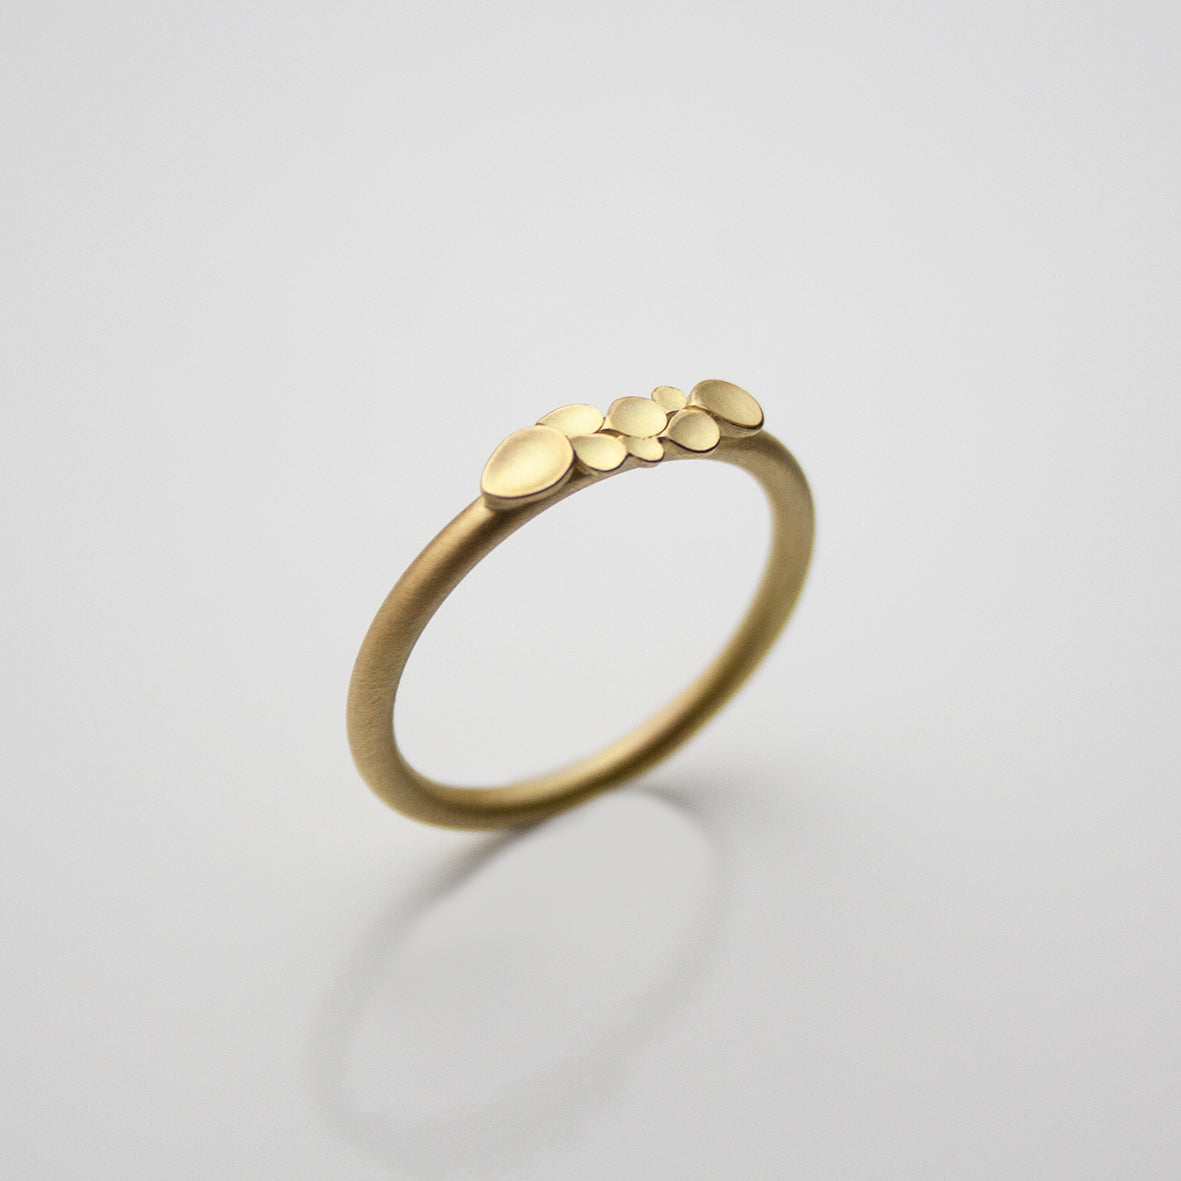 Dahlia 18ct. 2mm Gold Ring